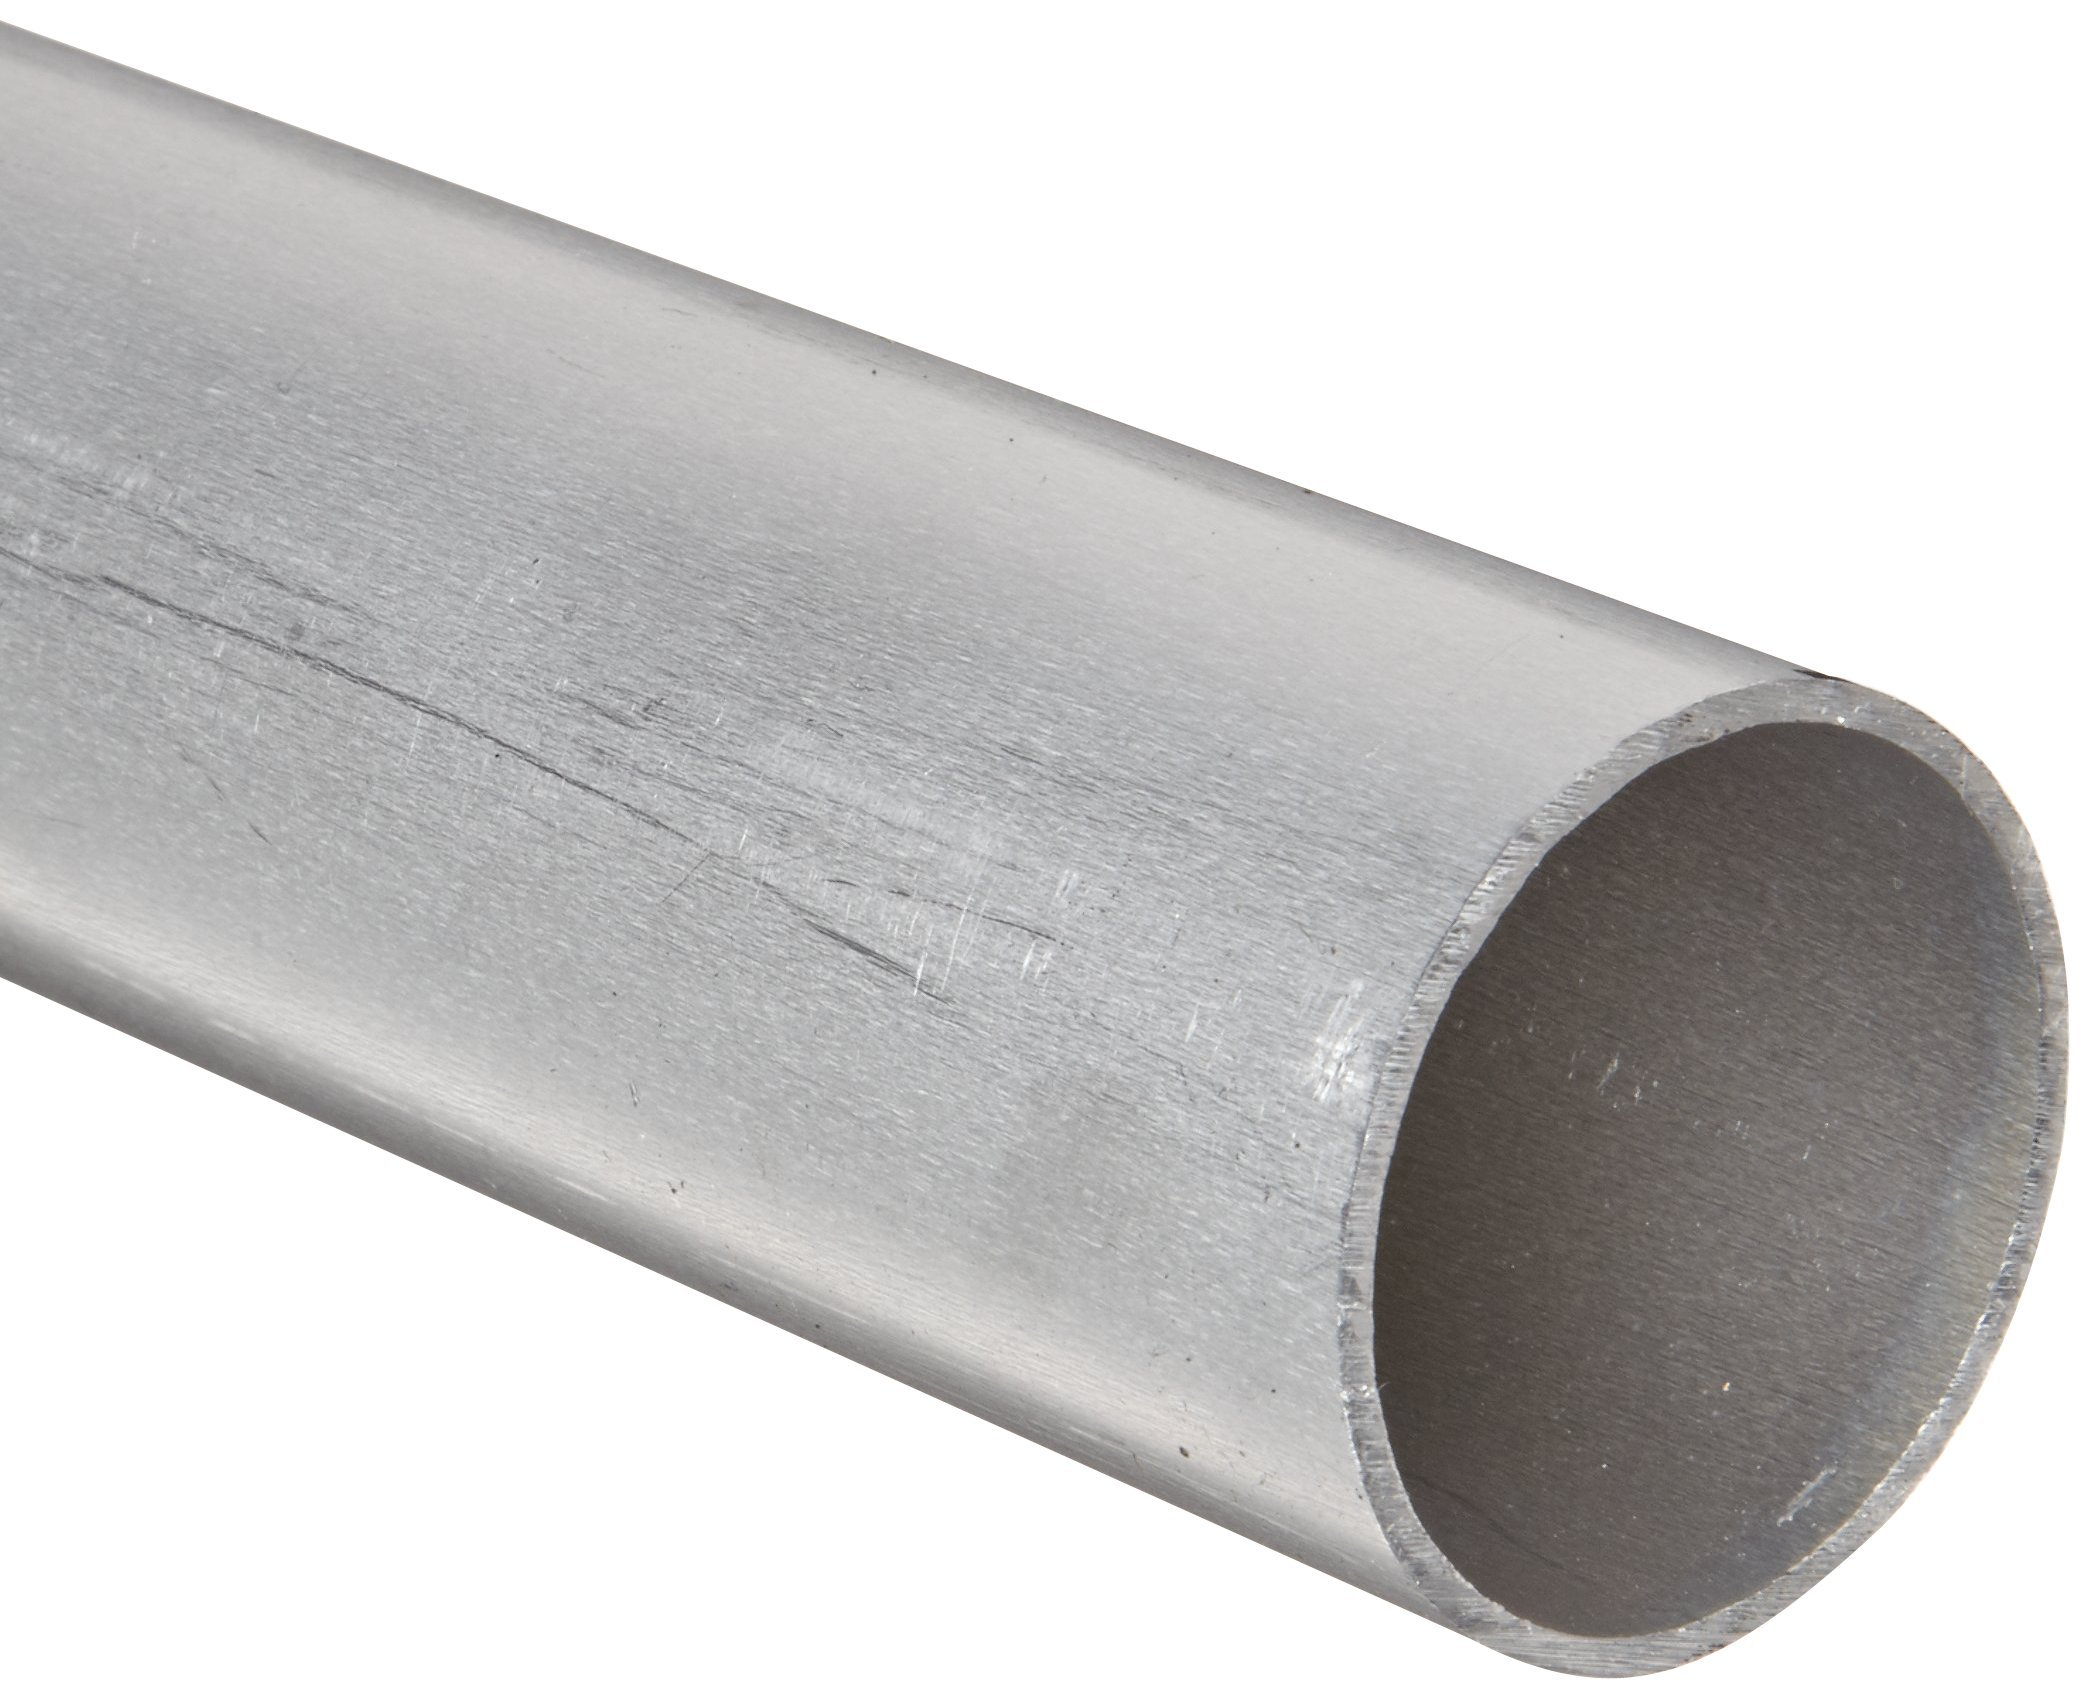 RMP 6061-T6 Aluminum Round Tube, 1-1/2 Inch OD x 0.125 Inch Wall, 48 Inch Length, Extruded, Unpolished (Mill) Finish by RMP